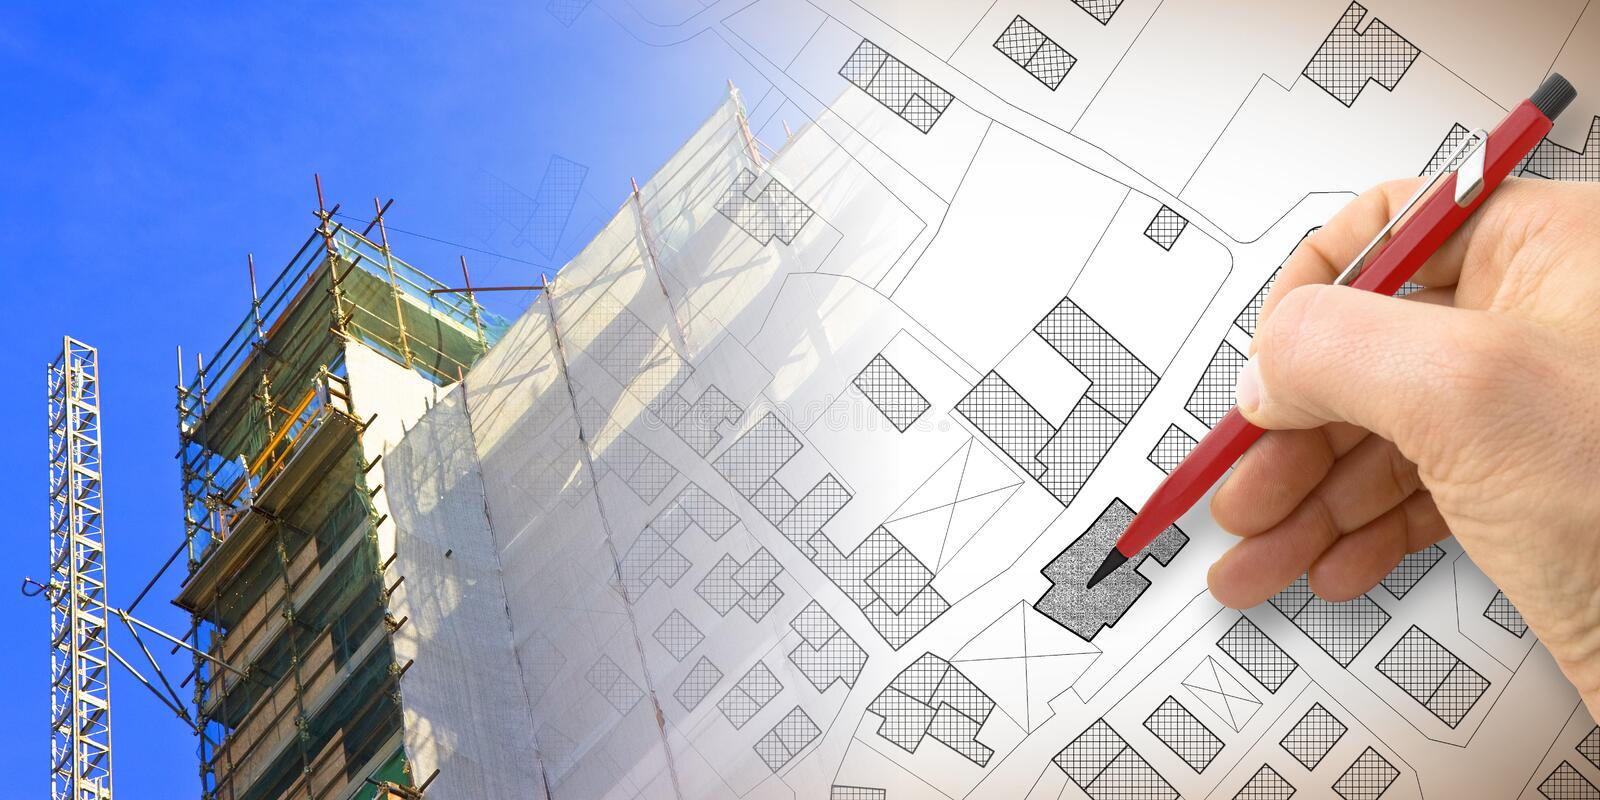 Renovation of a residential building with a metal scaffolding in a construction site - concept image with hand drawing over an. Imaginary .cadastral map of royalty free stock photo